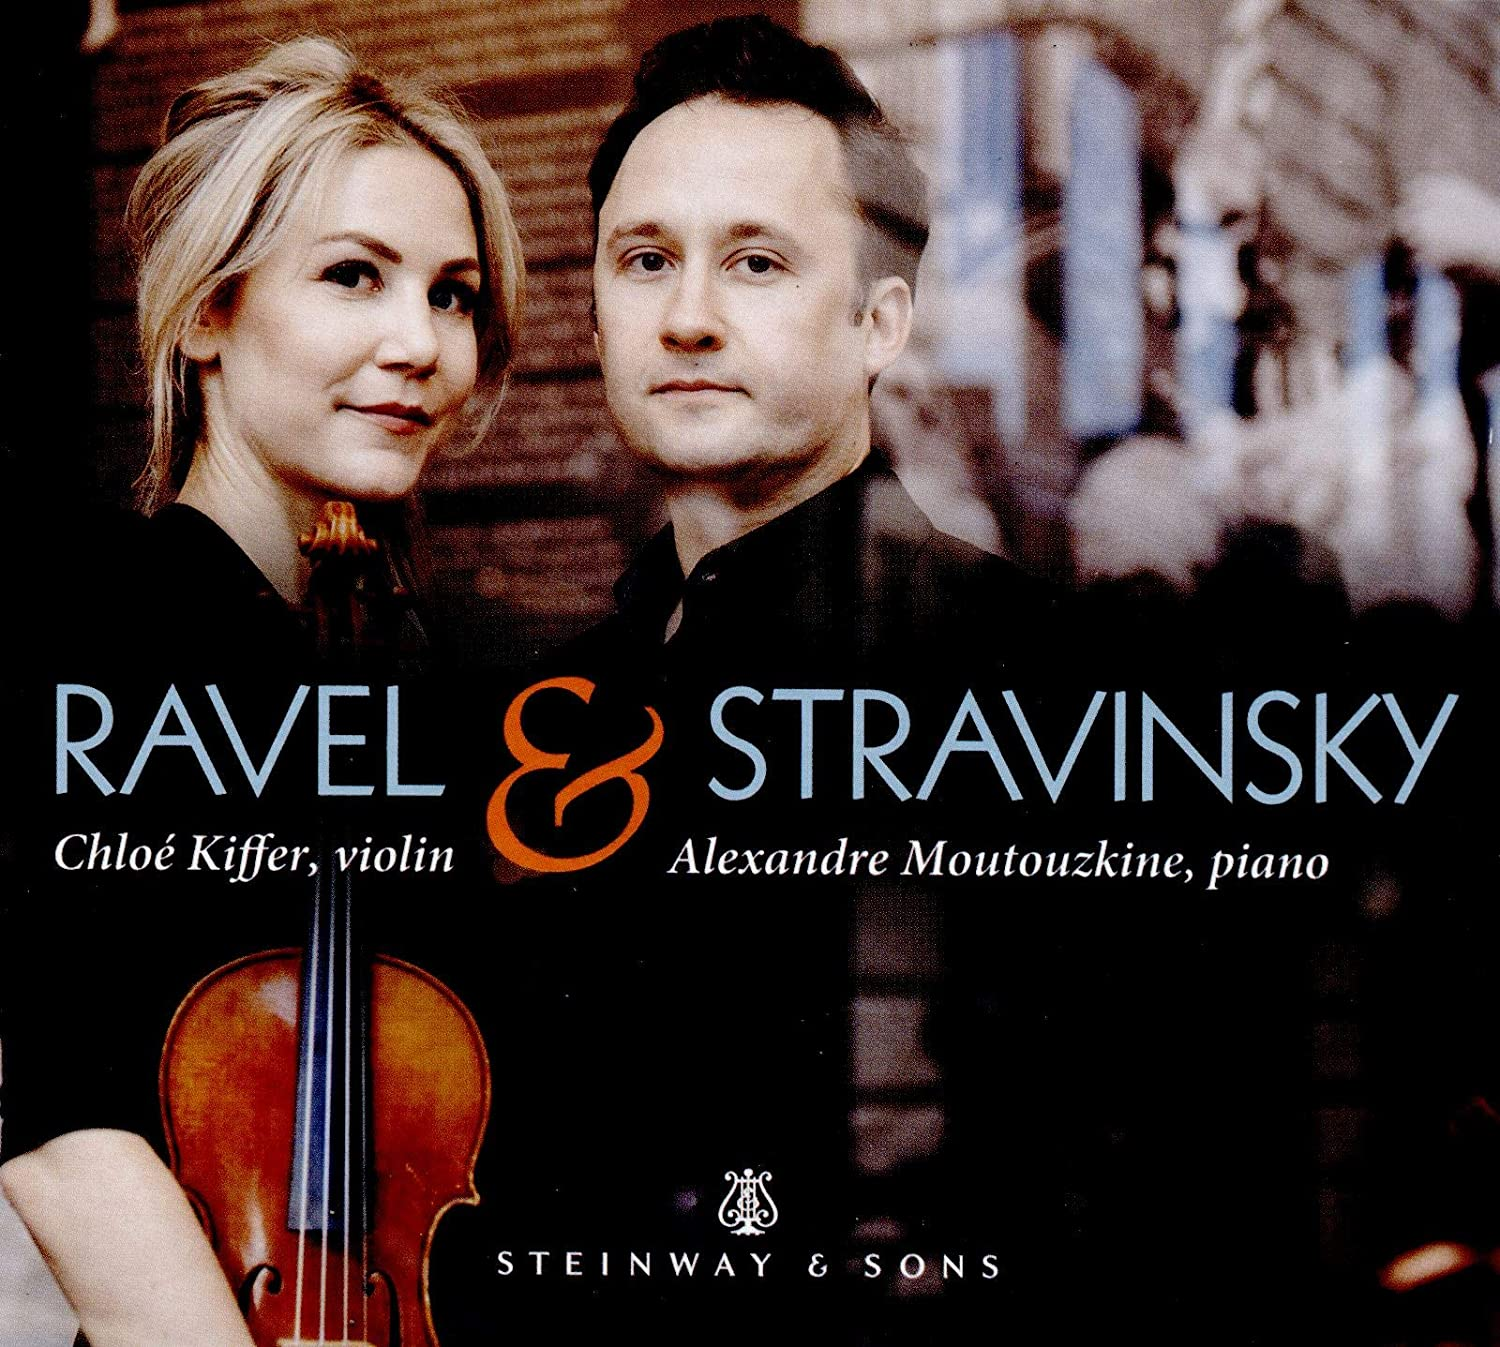 Review of RAVEL; STRAVINSKY Works for violin and piano (Kiffer & Moutouzkine)